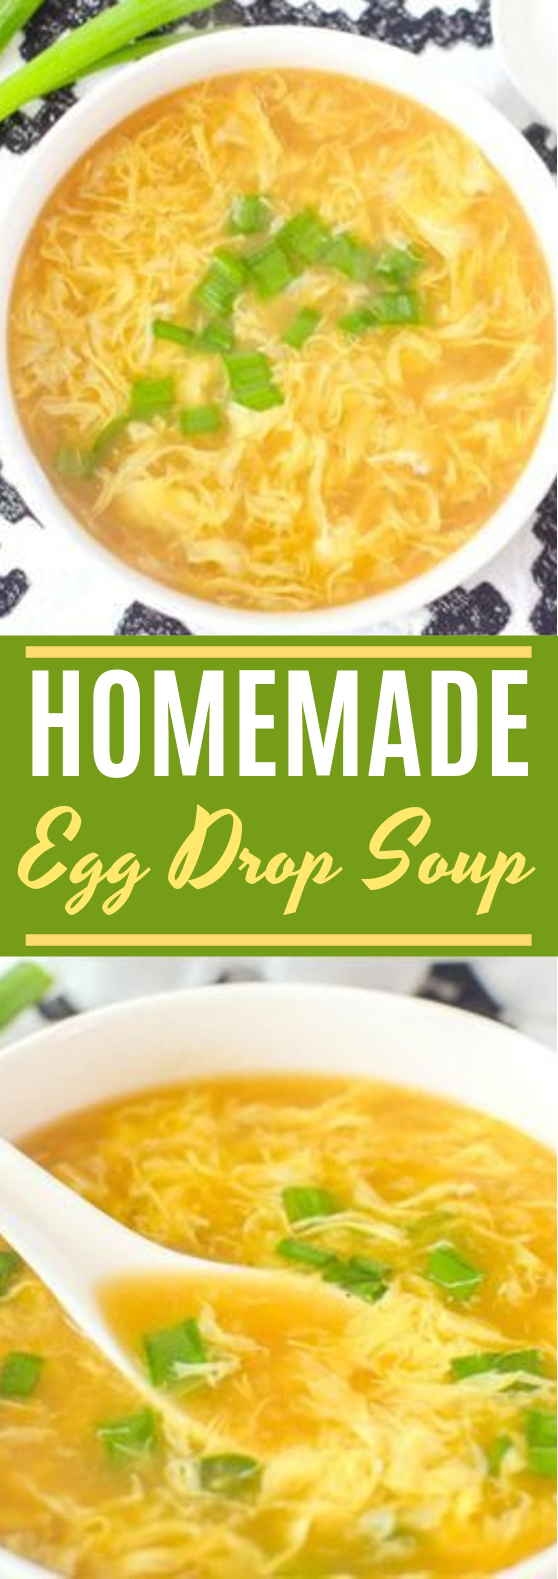 Homemade Egg Drop Soup #dinner #soup